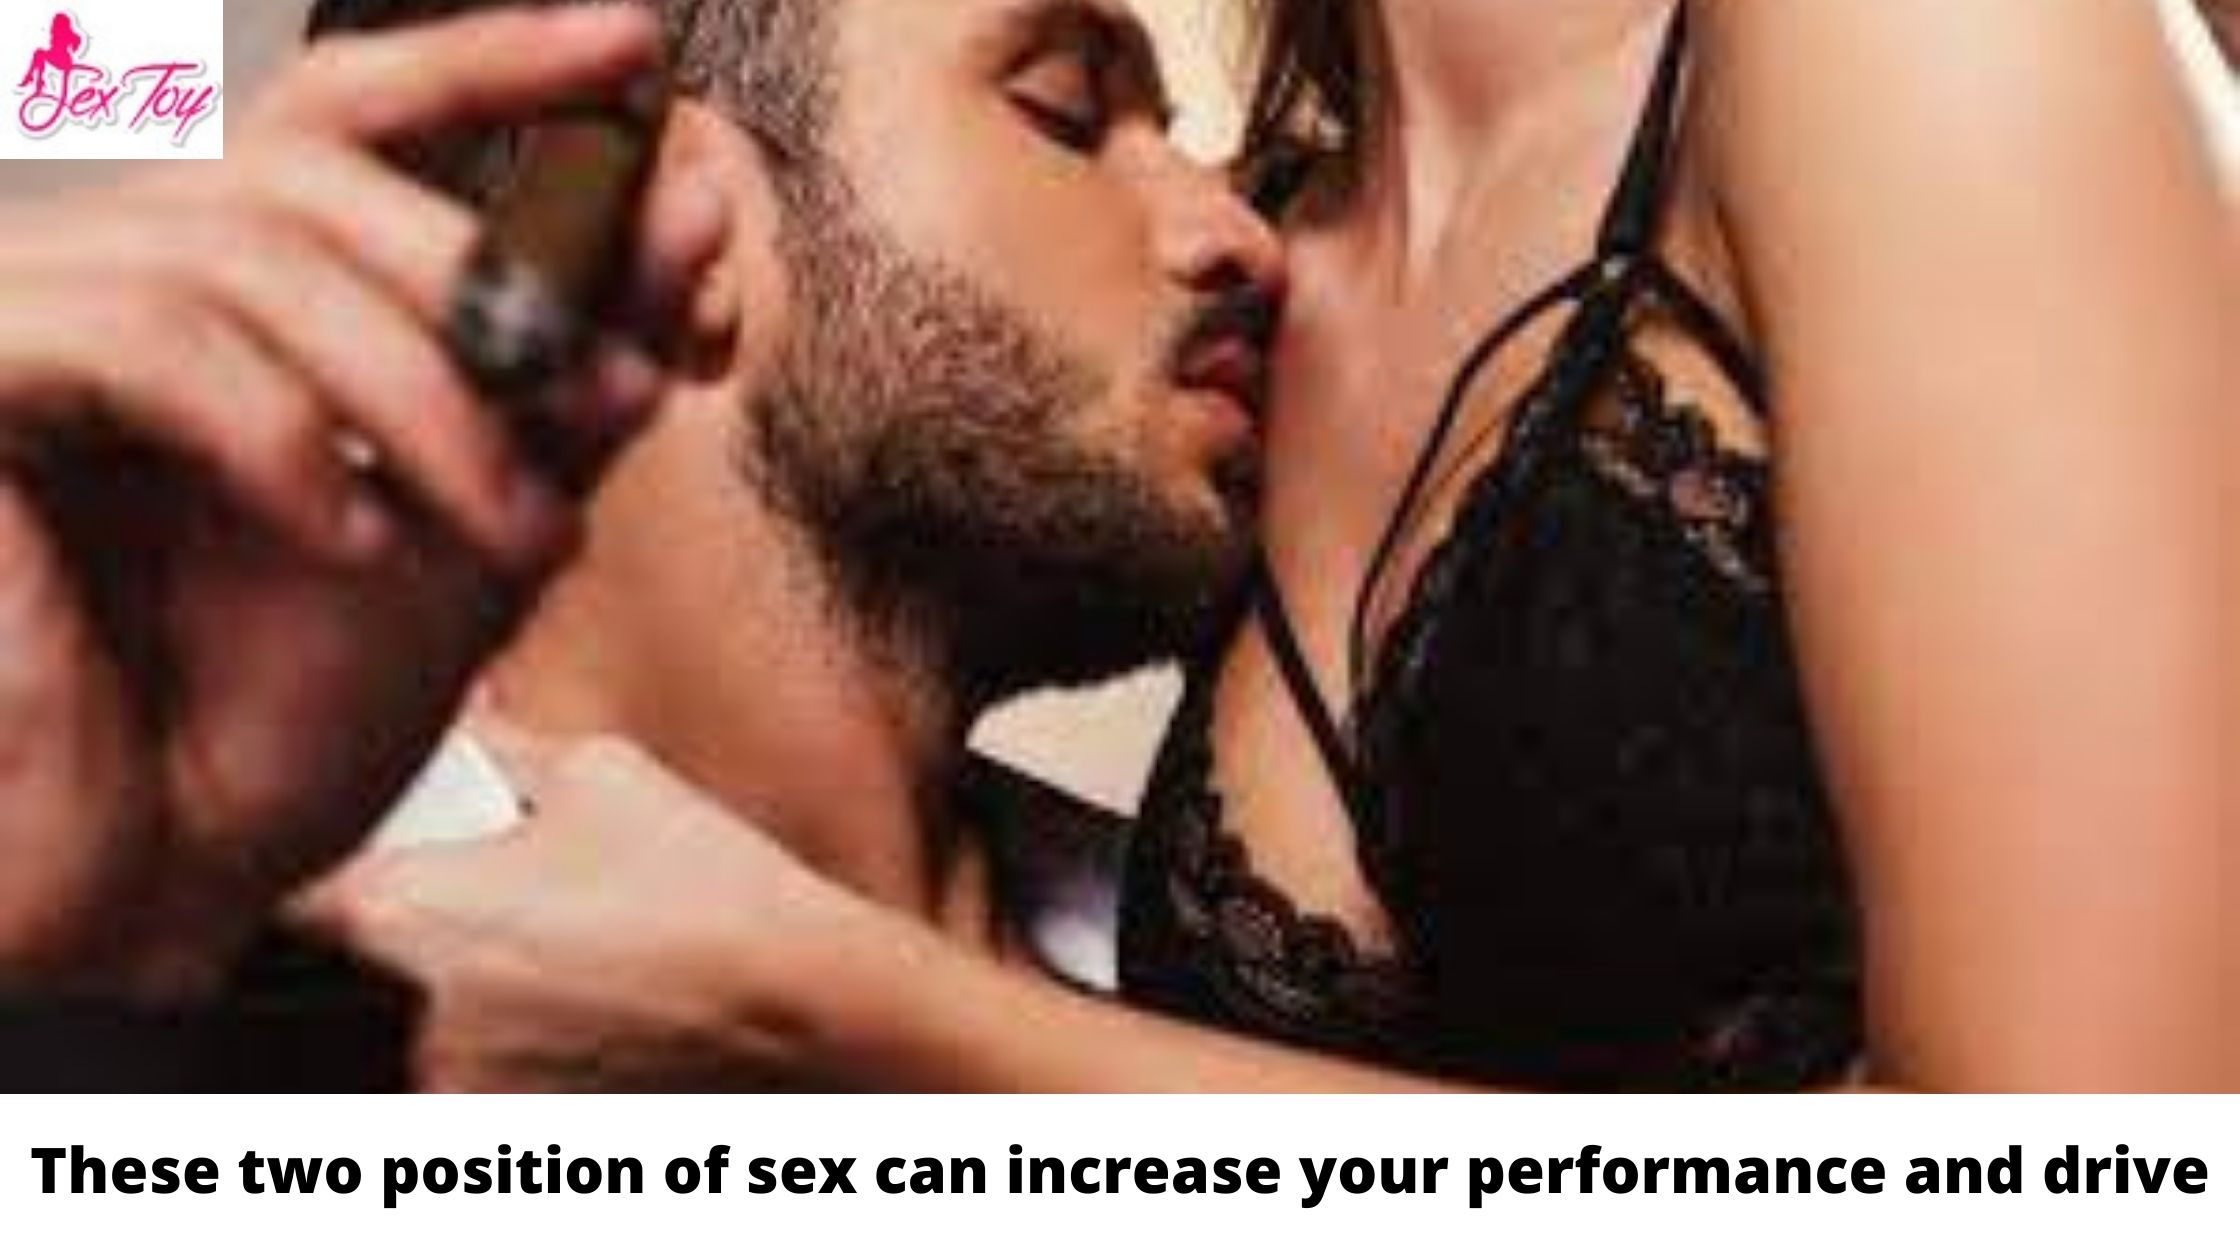 These two position of sex can increase your performance and drive